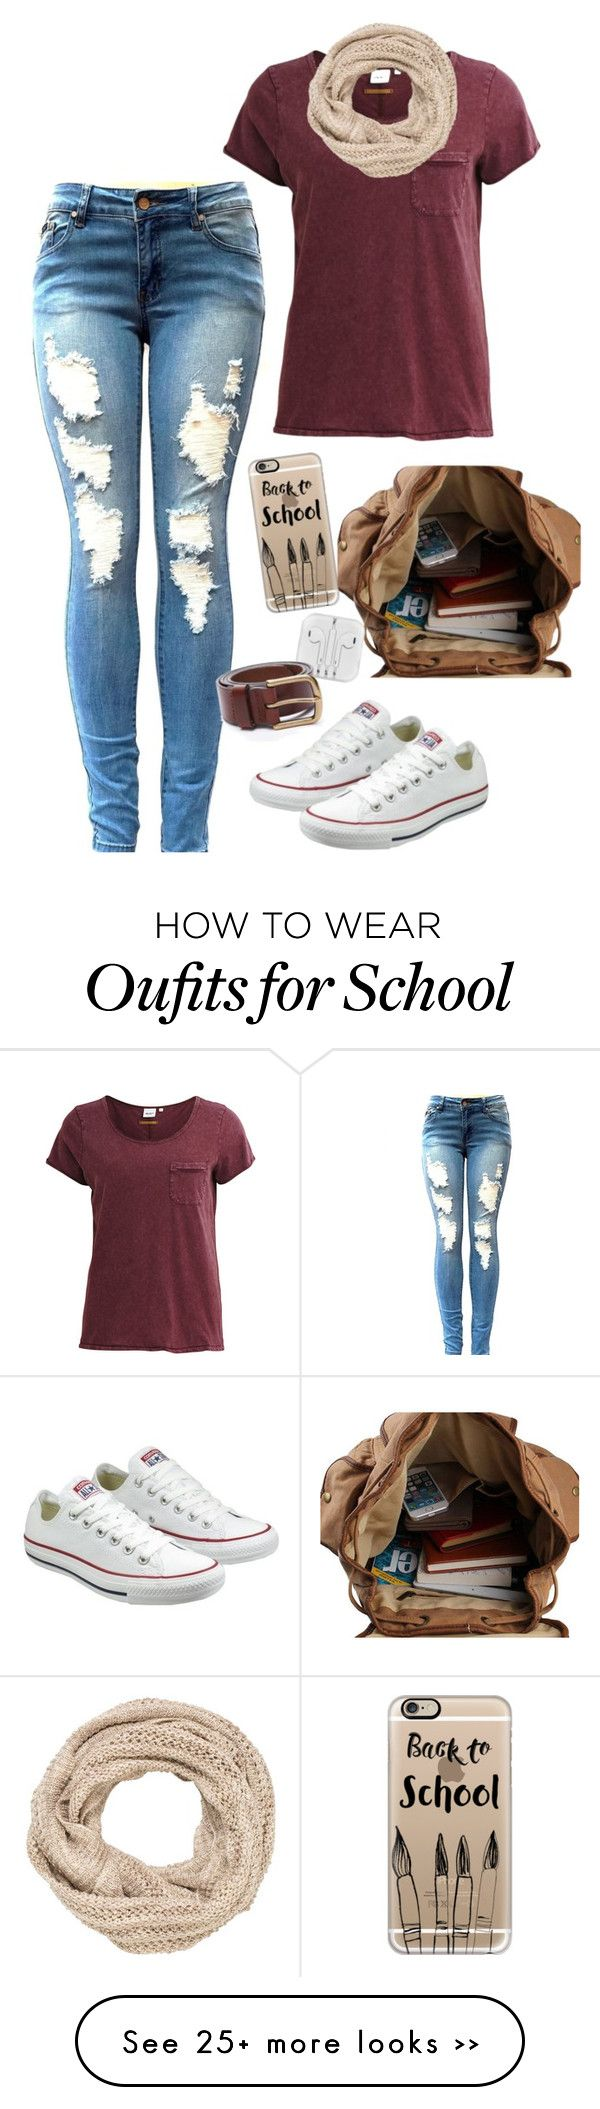 """Back To School"" by blondybecca on Polyvore featuring Object Collectors Item, Converse, Casetify and maurices"